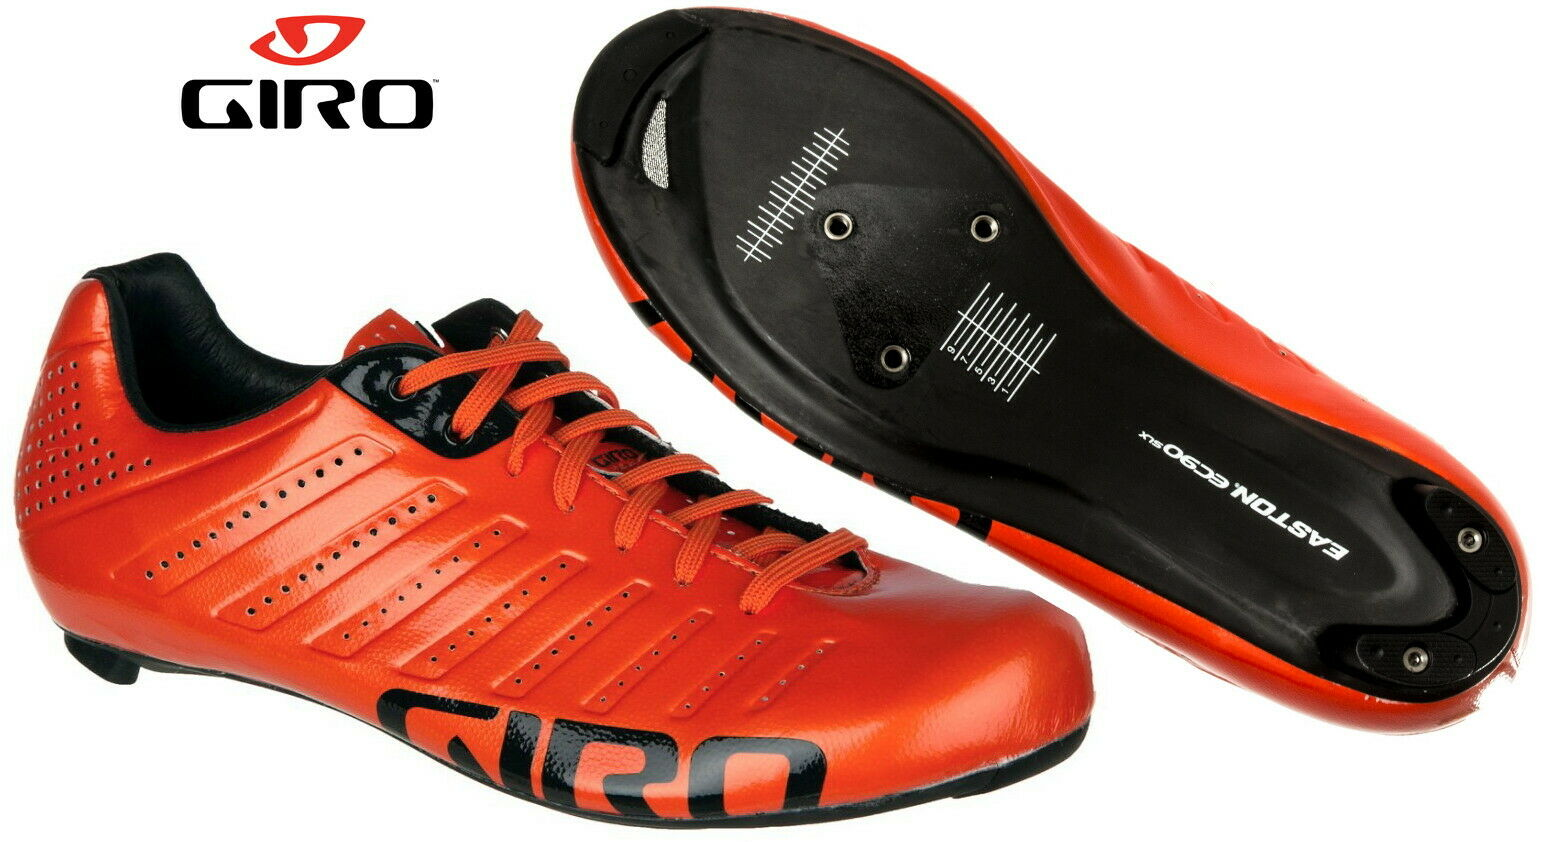 Schuhgiro Empire slx Orange - 43-44